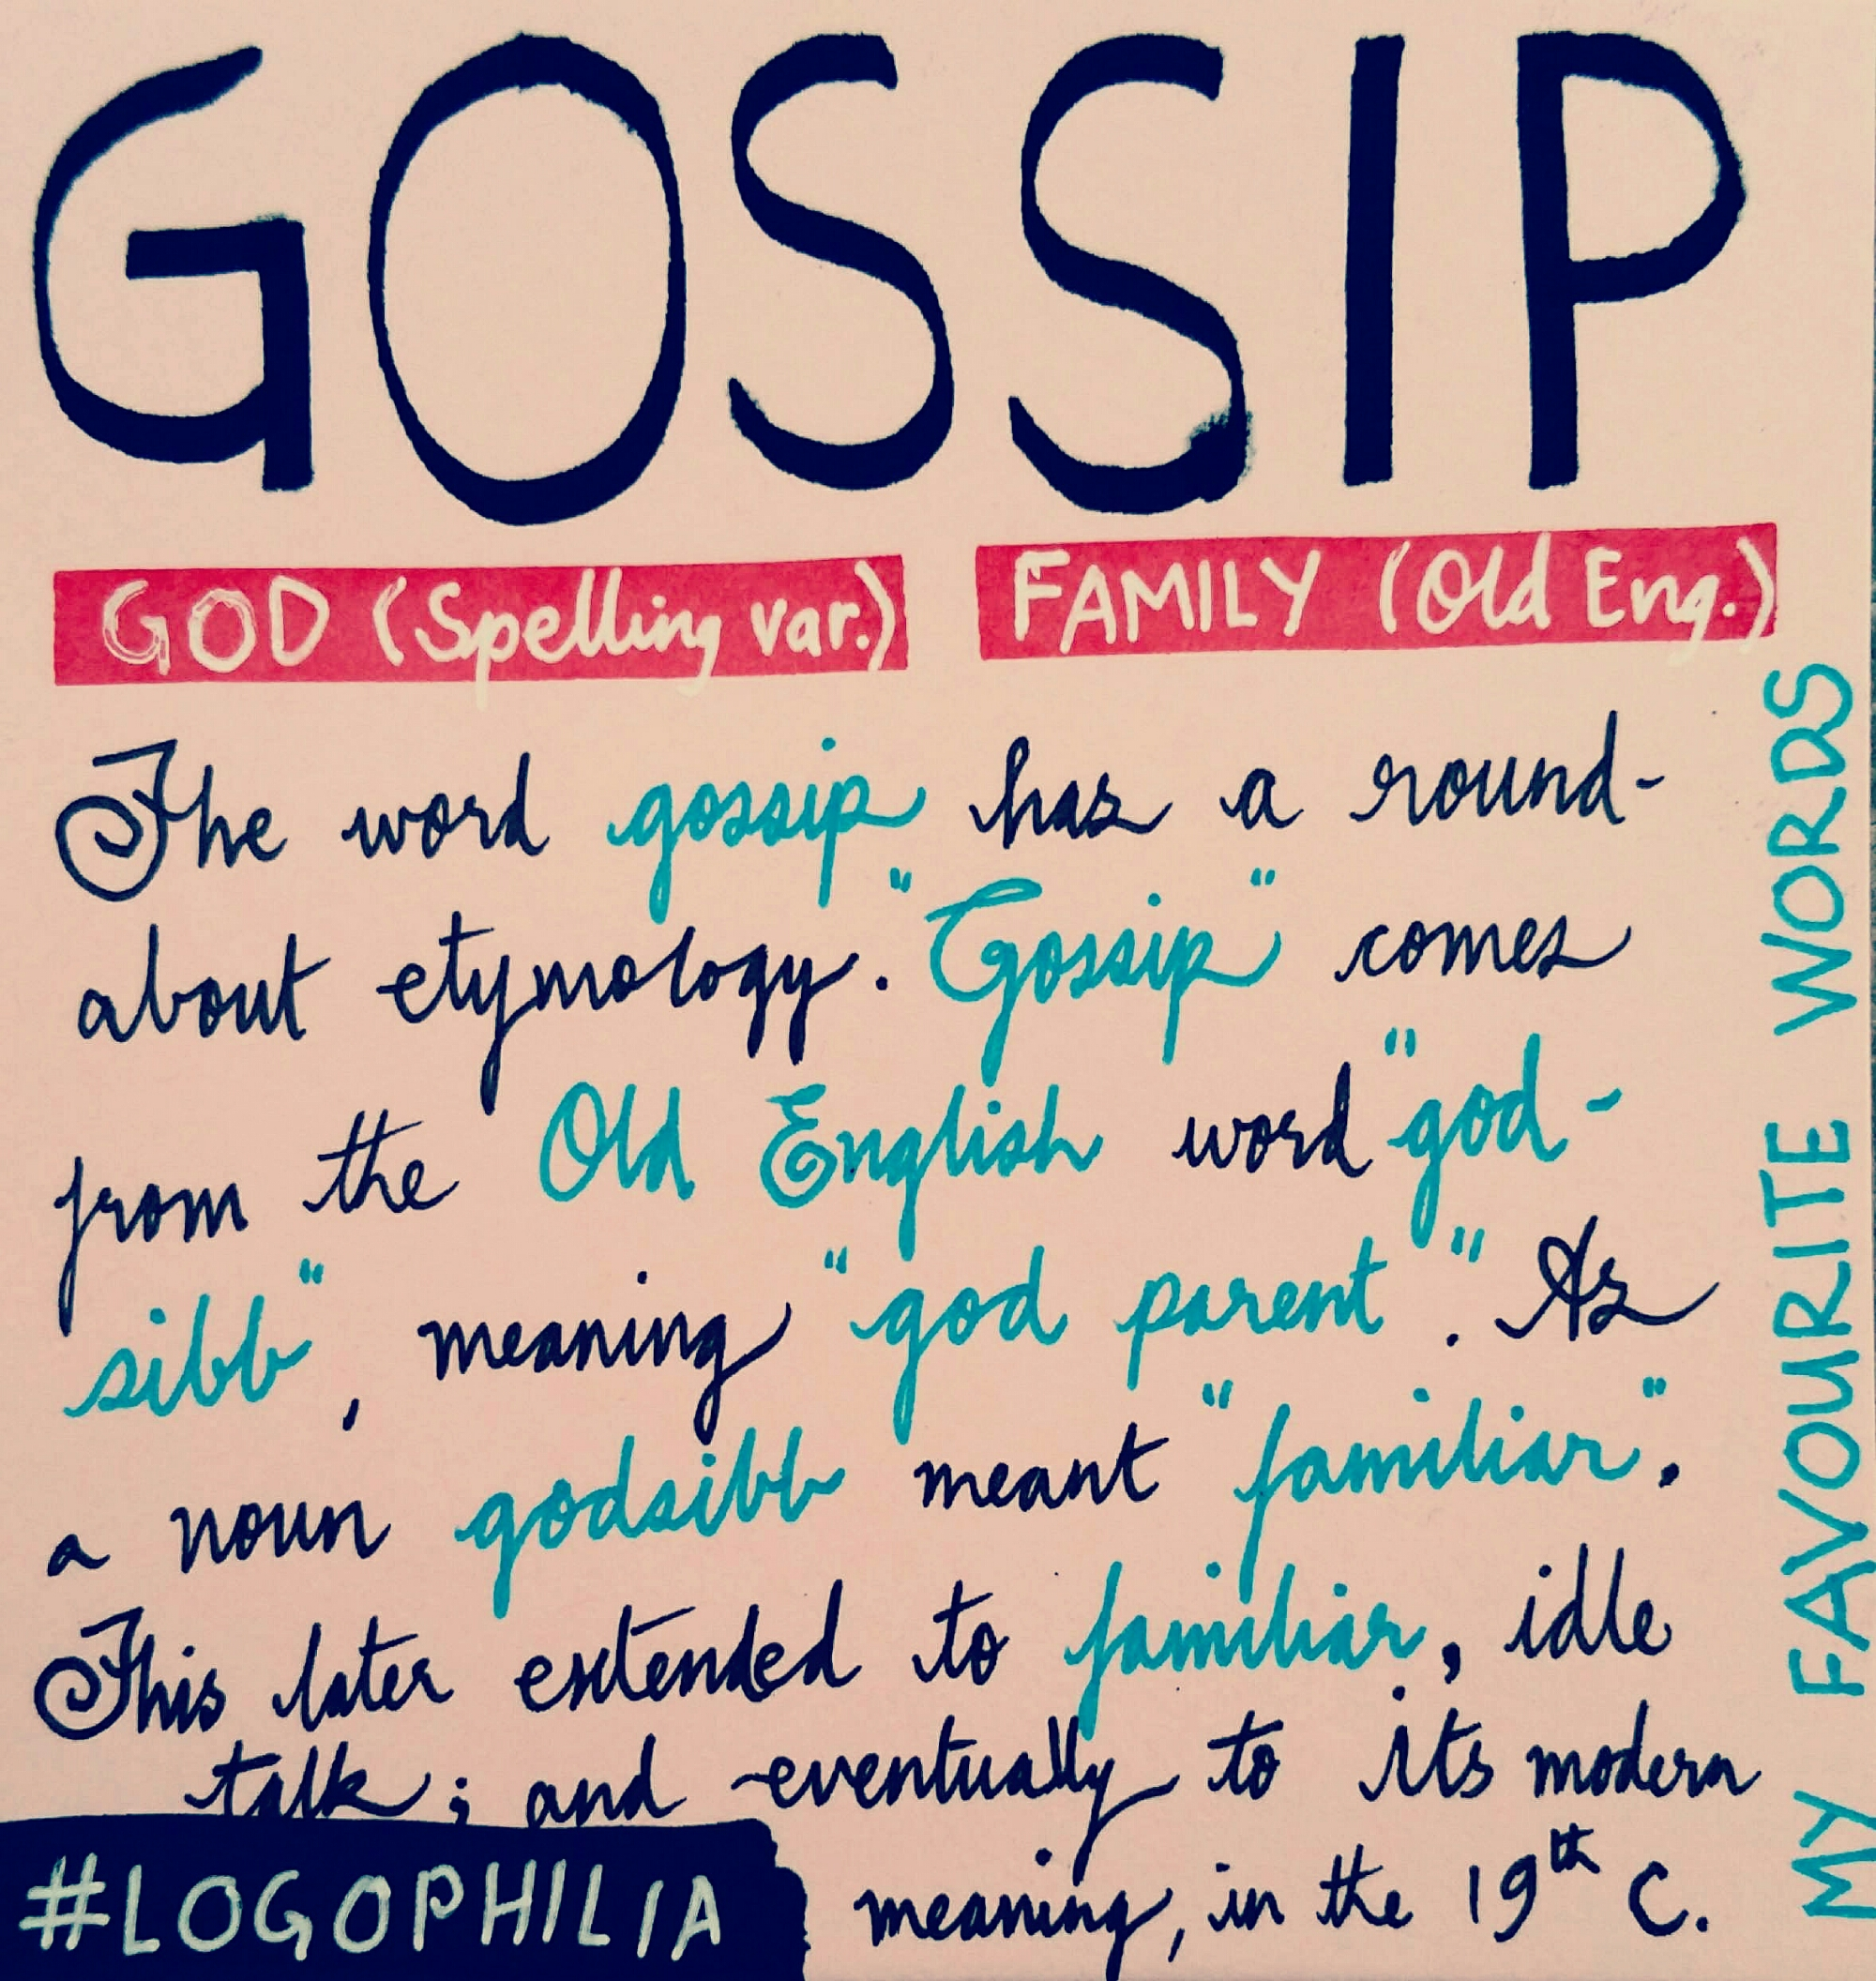 National Day Of Reconciliation ⁓ The Fastest Gossip Meaning